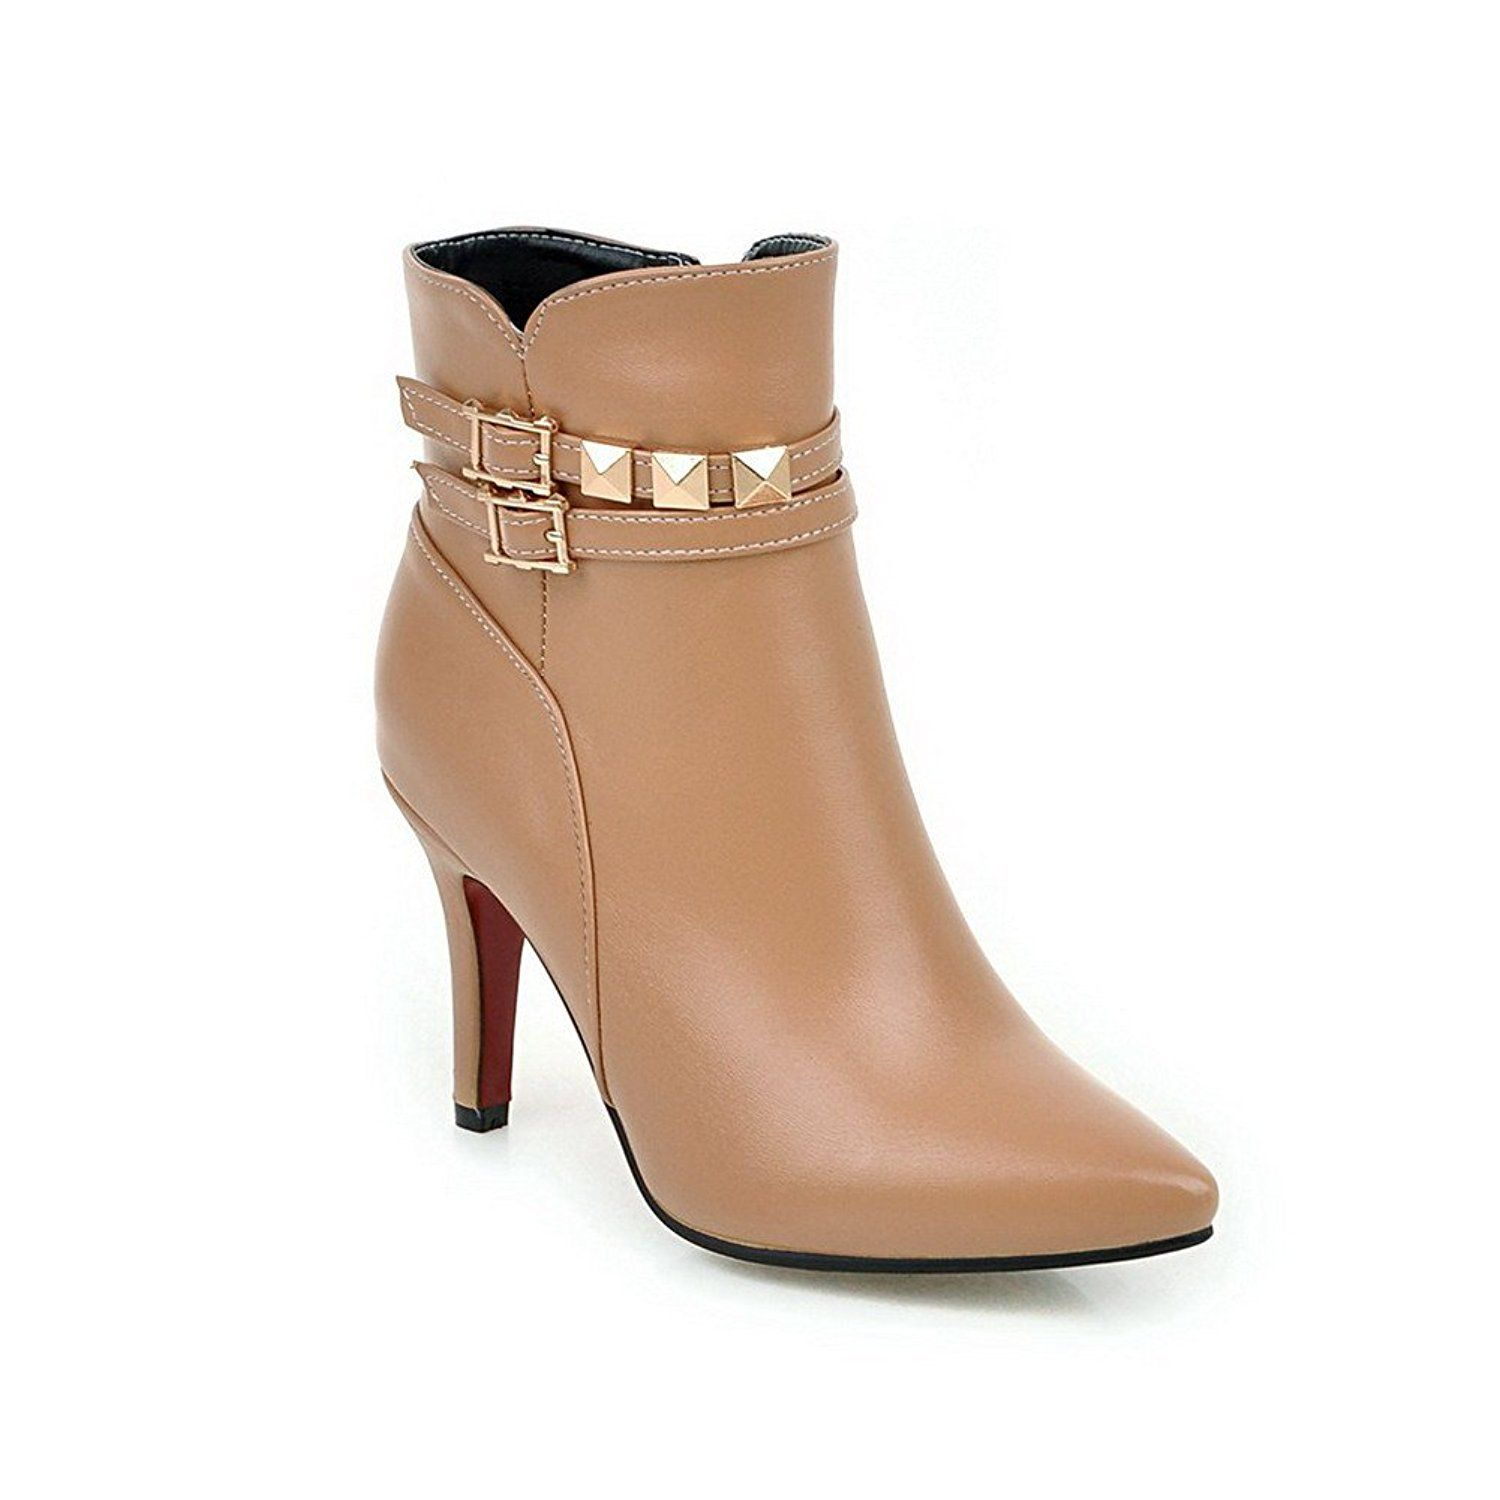 4abbe3b3c420 Attention Women s Emmy Wedge Bootie - Taupe